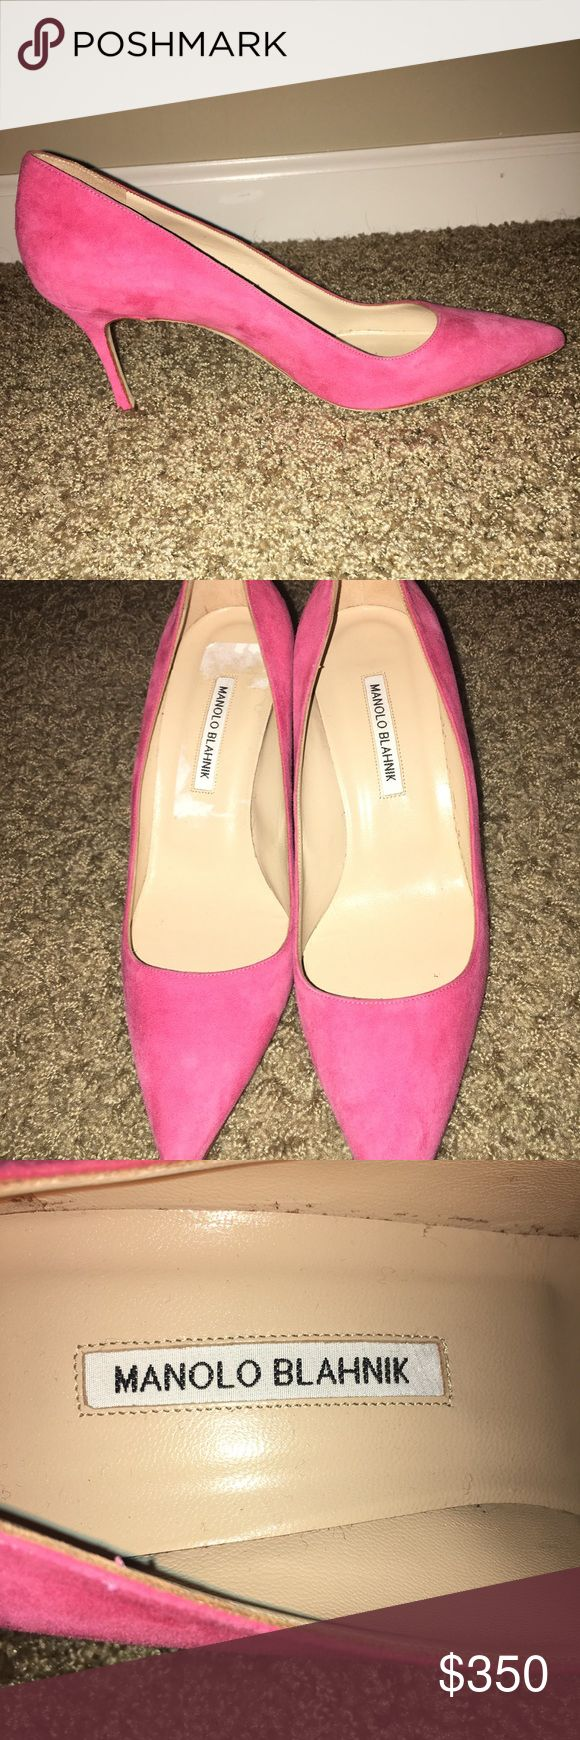 Manolo Blahnik pink suede heels, size 40.5 Beautiful pink suede Manolo Blahnik heels. Brand new, never worn! I purchased these on consignment for $700. I am a size 10 and these were too small for me to ever wear. No box or bag included. Open to offers, but no trades please. Manolo Blahnik Shoes Heels